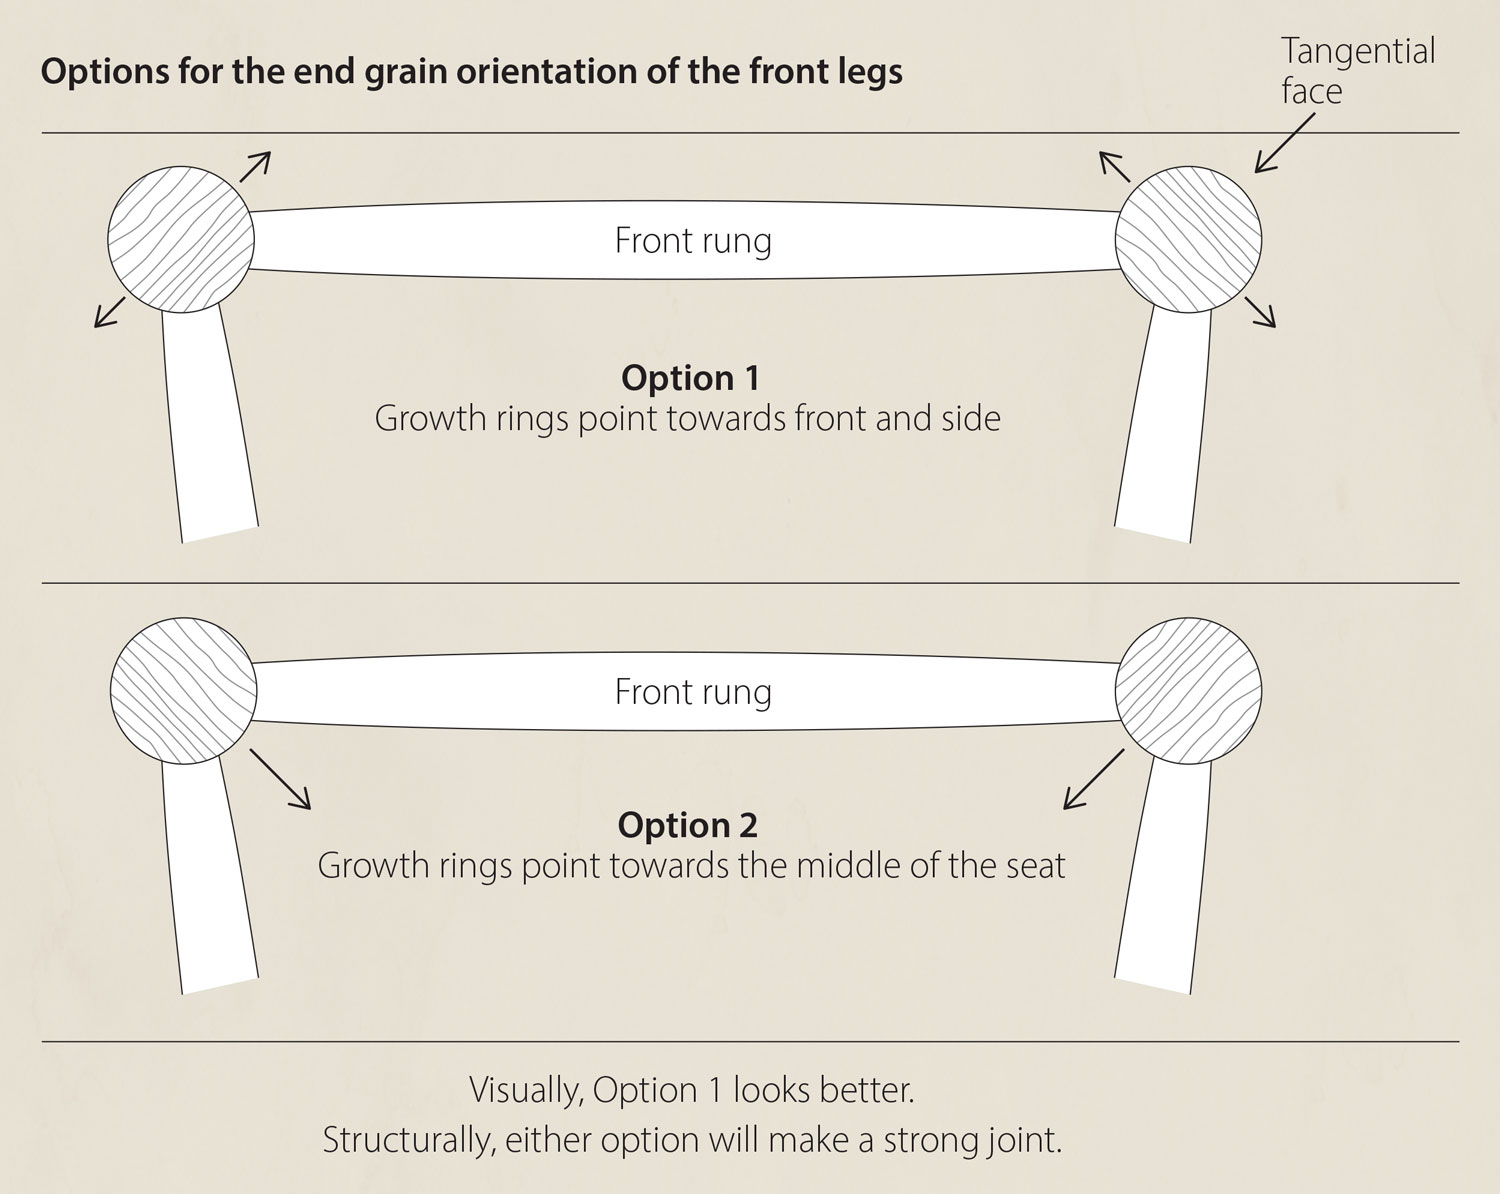 Options for the end grain orientation of the front legs